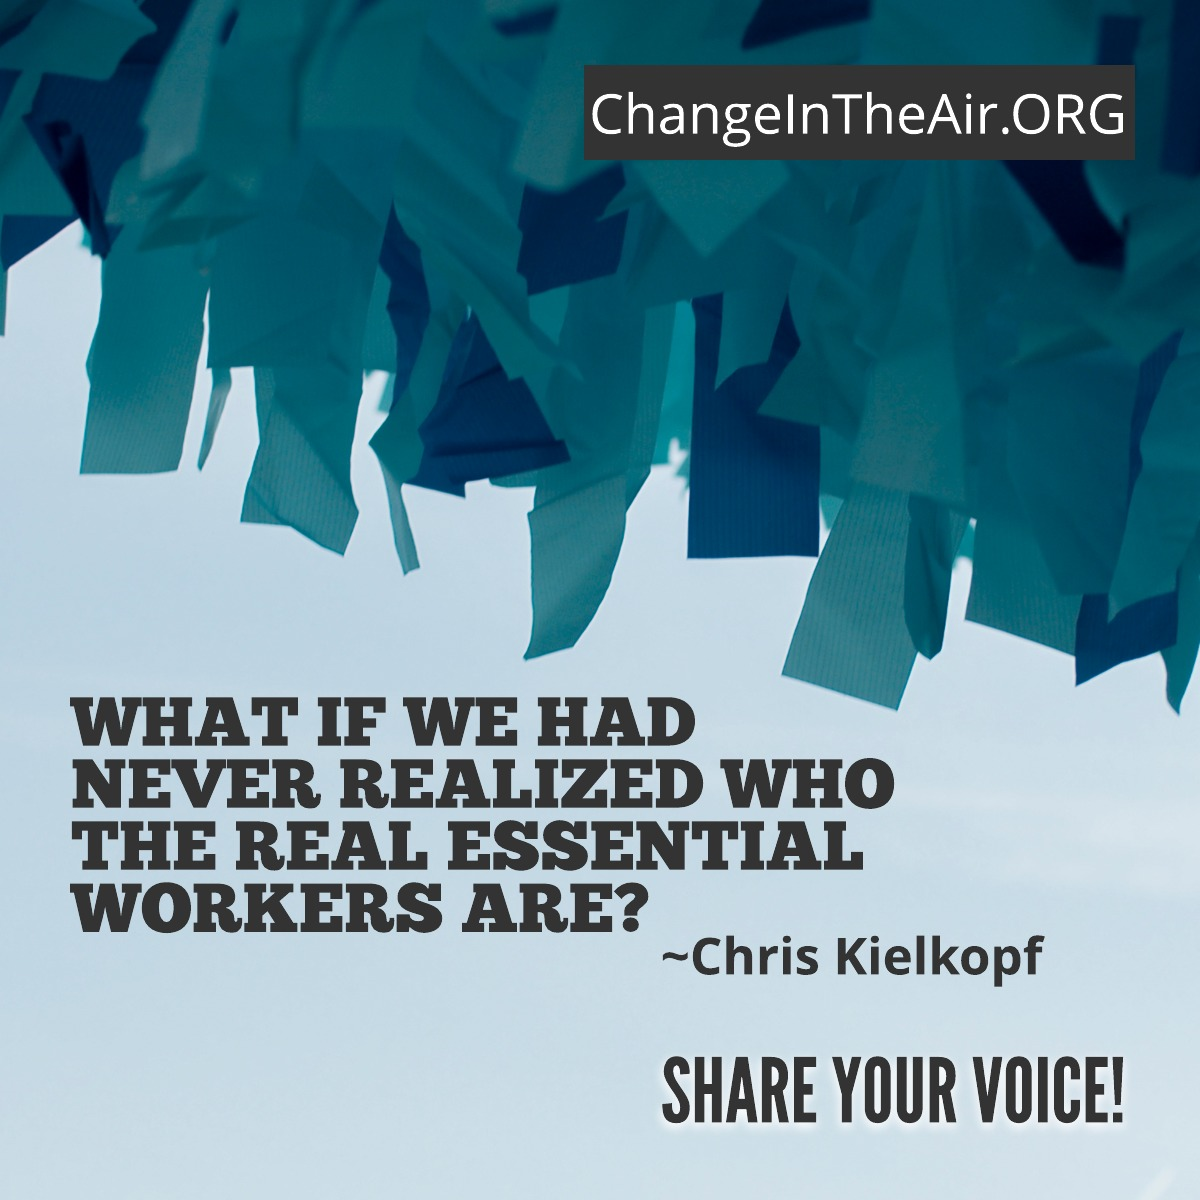 Change in the Air message. What if we had never realized who the real essential workers are?